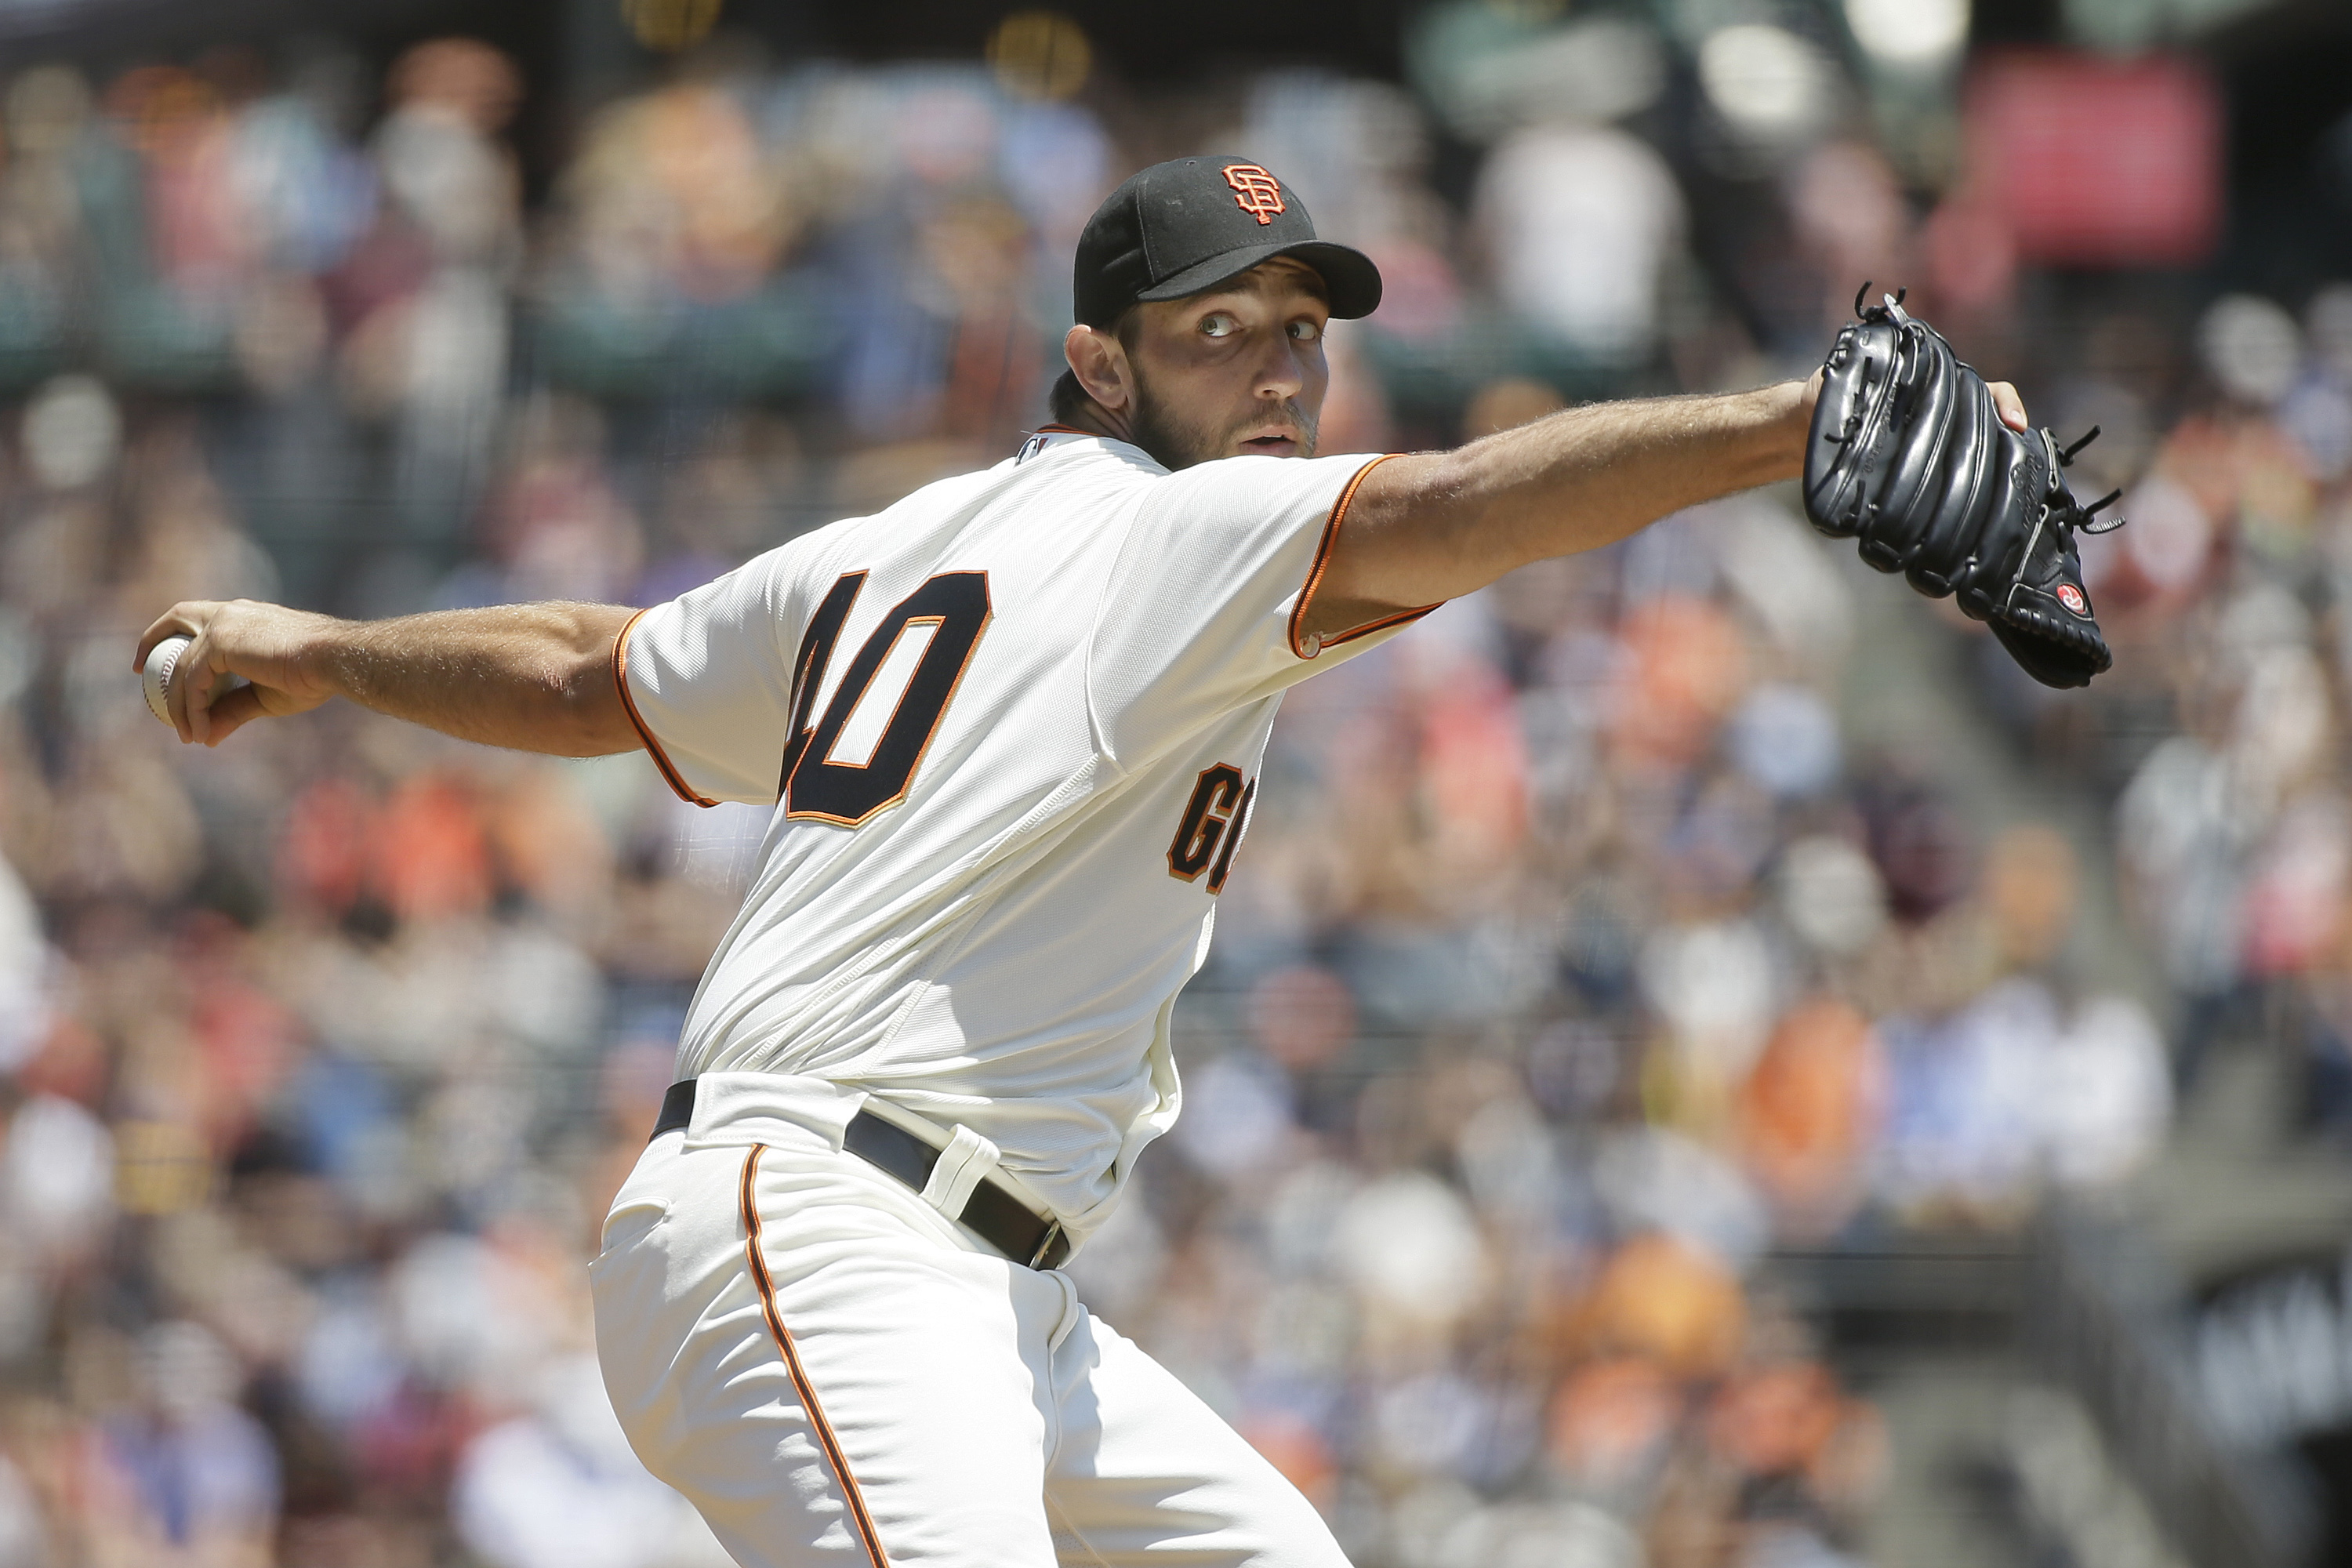 San Francisco Giants starting pitcher Madison Bumgarner throws in the first inning of a baseball game against the Cincinnati Reds Wednesday, July 27, 2016, in San Francisco. (AP Photo/Eric Risberg)